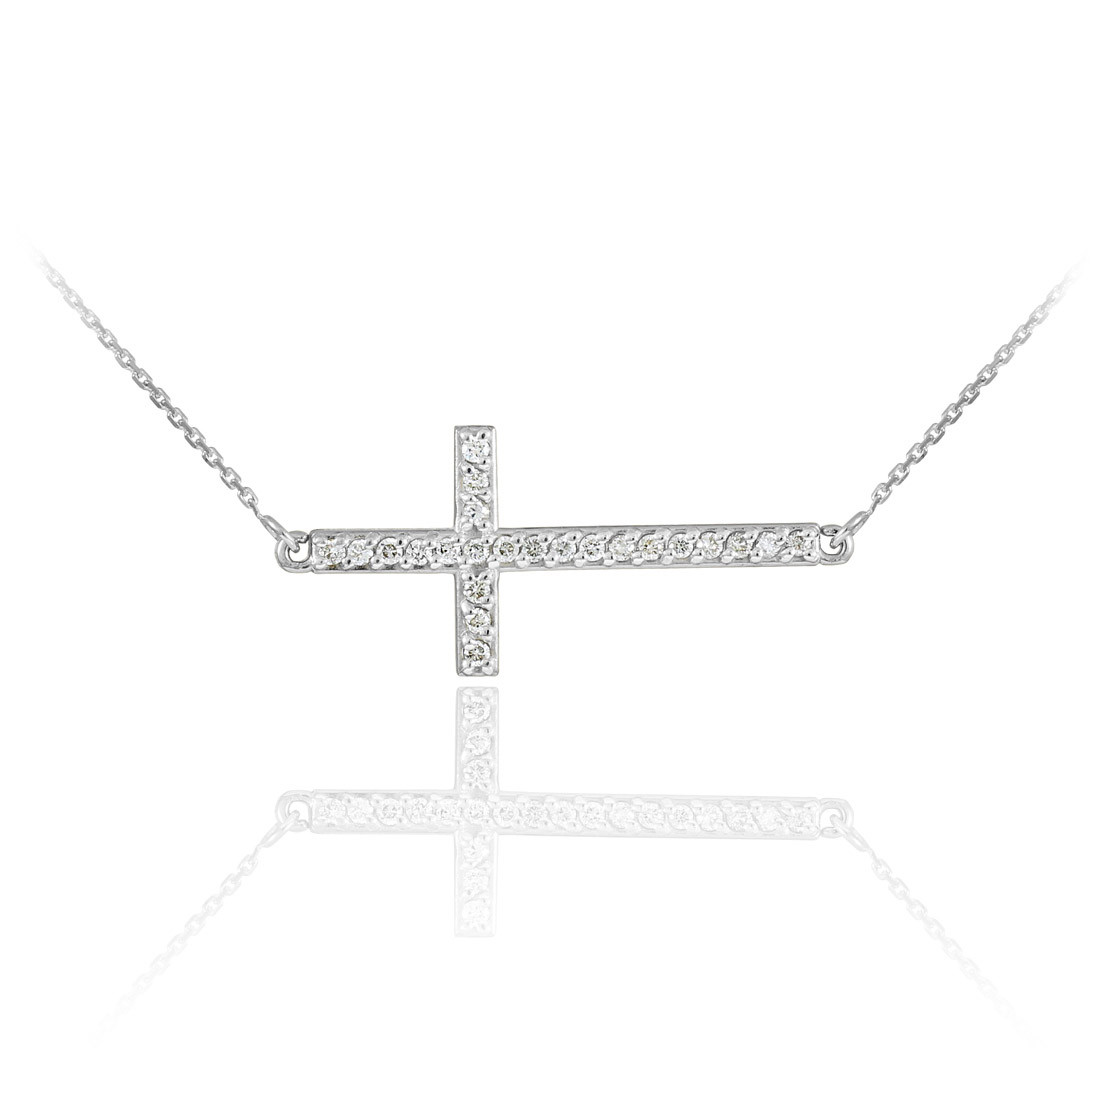 Cz sideways cross pendant necklace in sterling silver gold boutique gold boutique cz sideways cross pendant necklace in sterling silver cz cross pendant necklace in solid 925 sterling silver aloadofball Choice Image